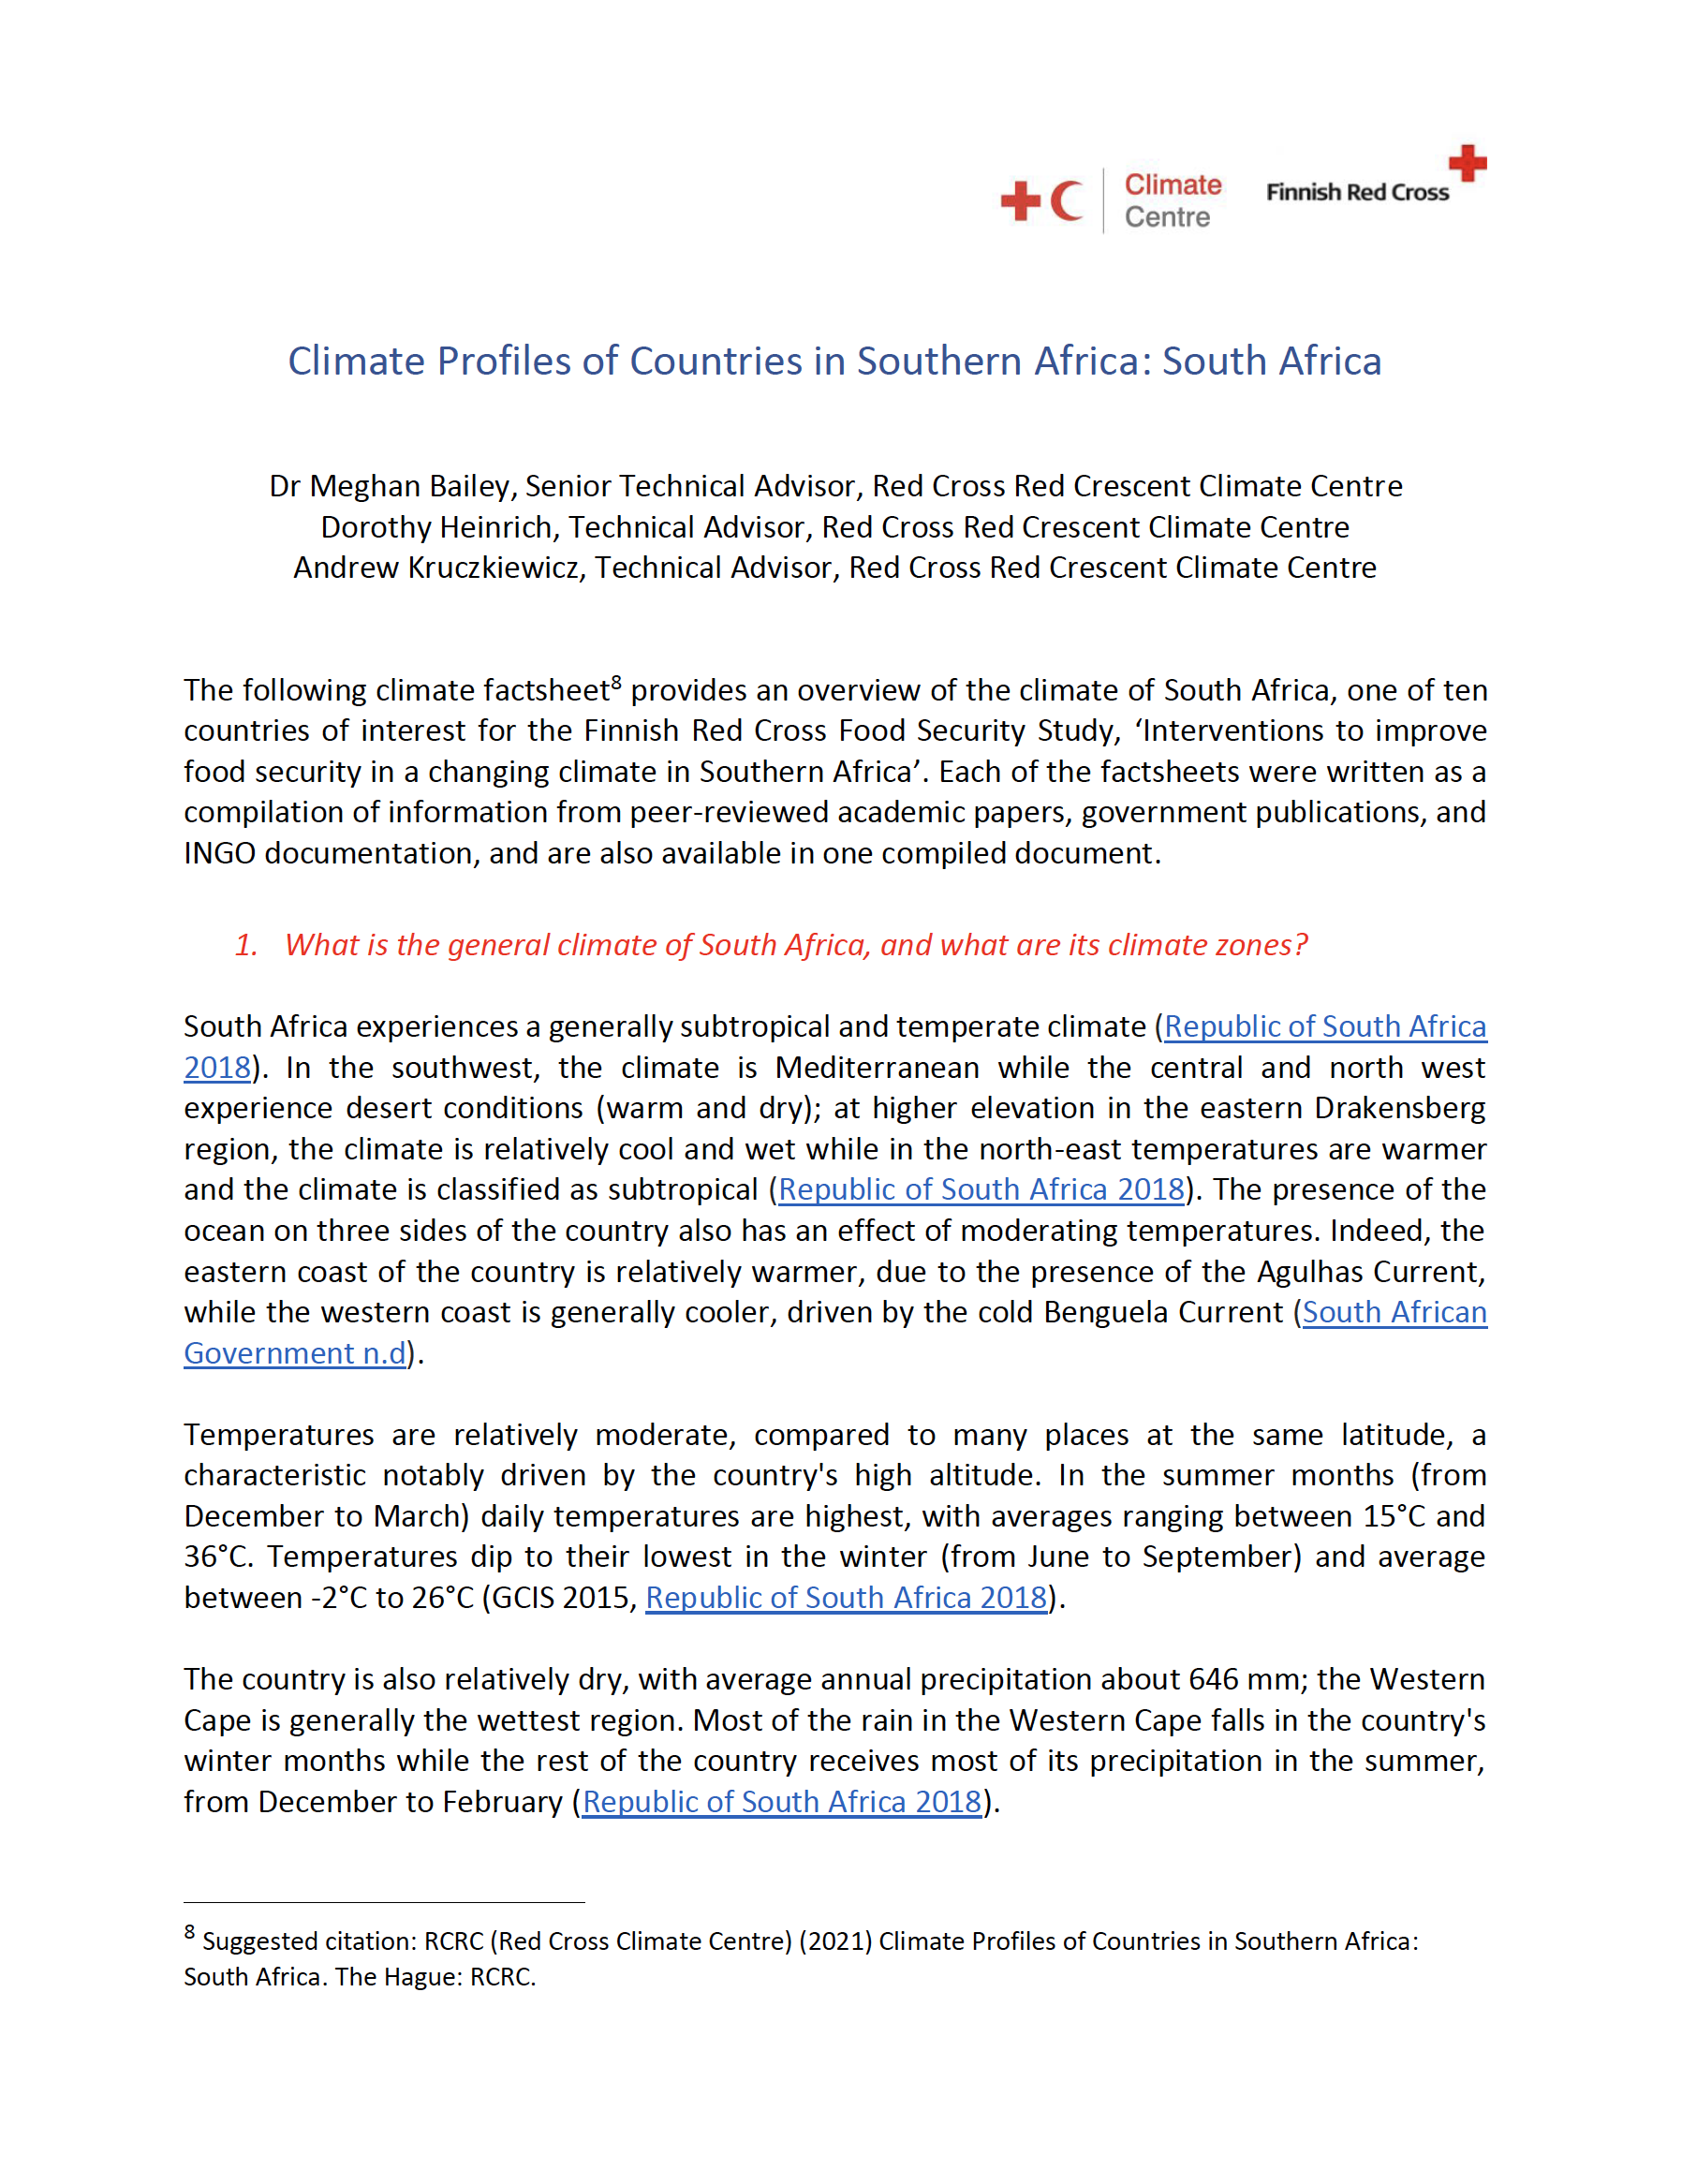 Climate Factsheet South Africa